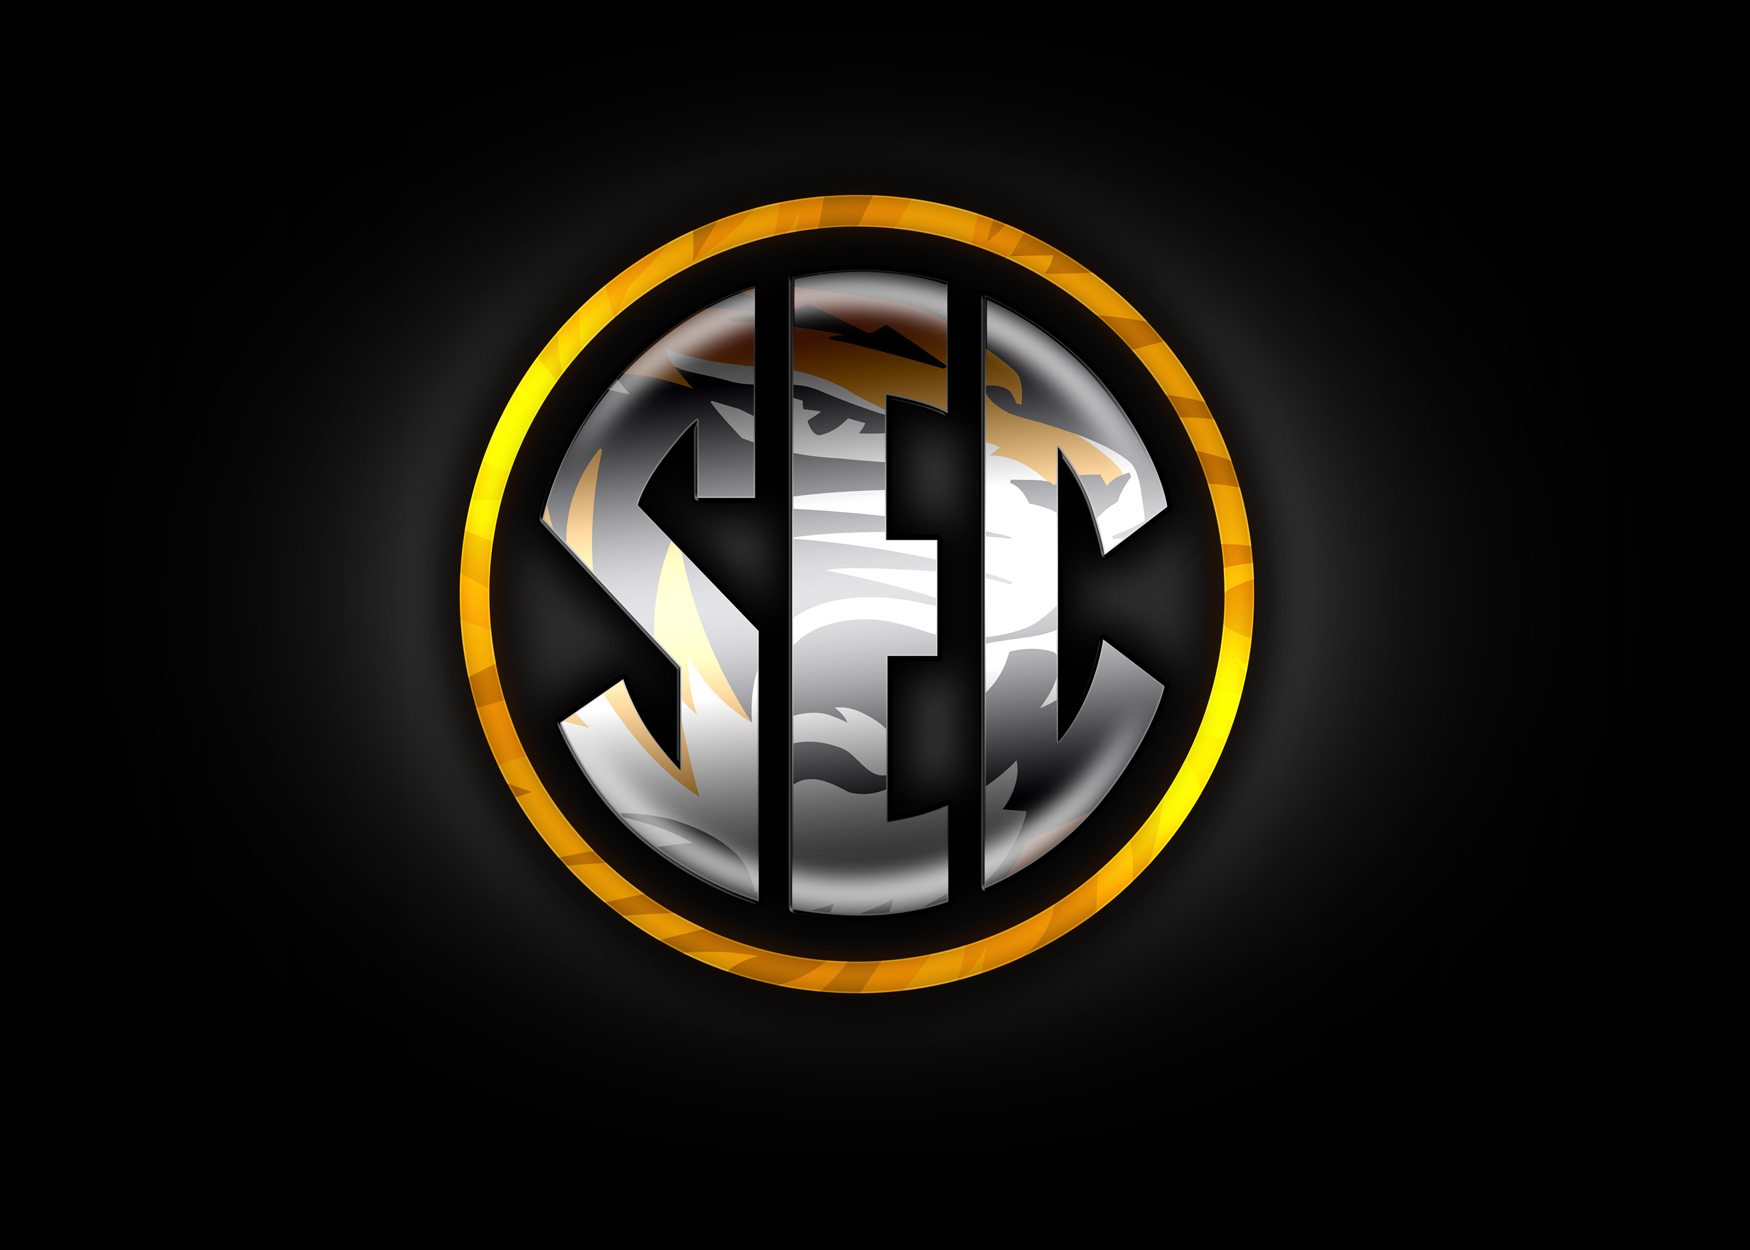 fans to rally support for a move to the Southeastern Conference SEC 1750x1250